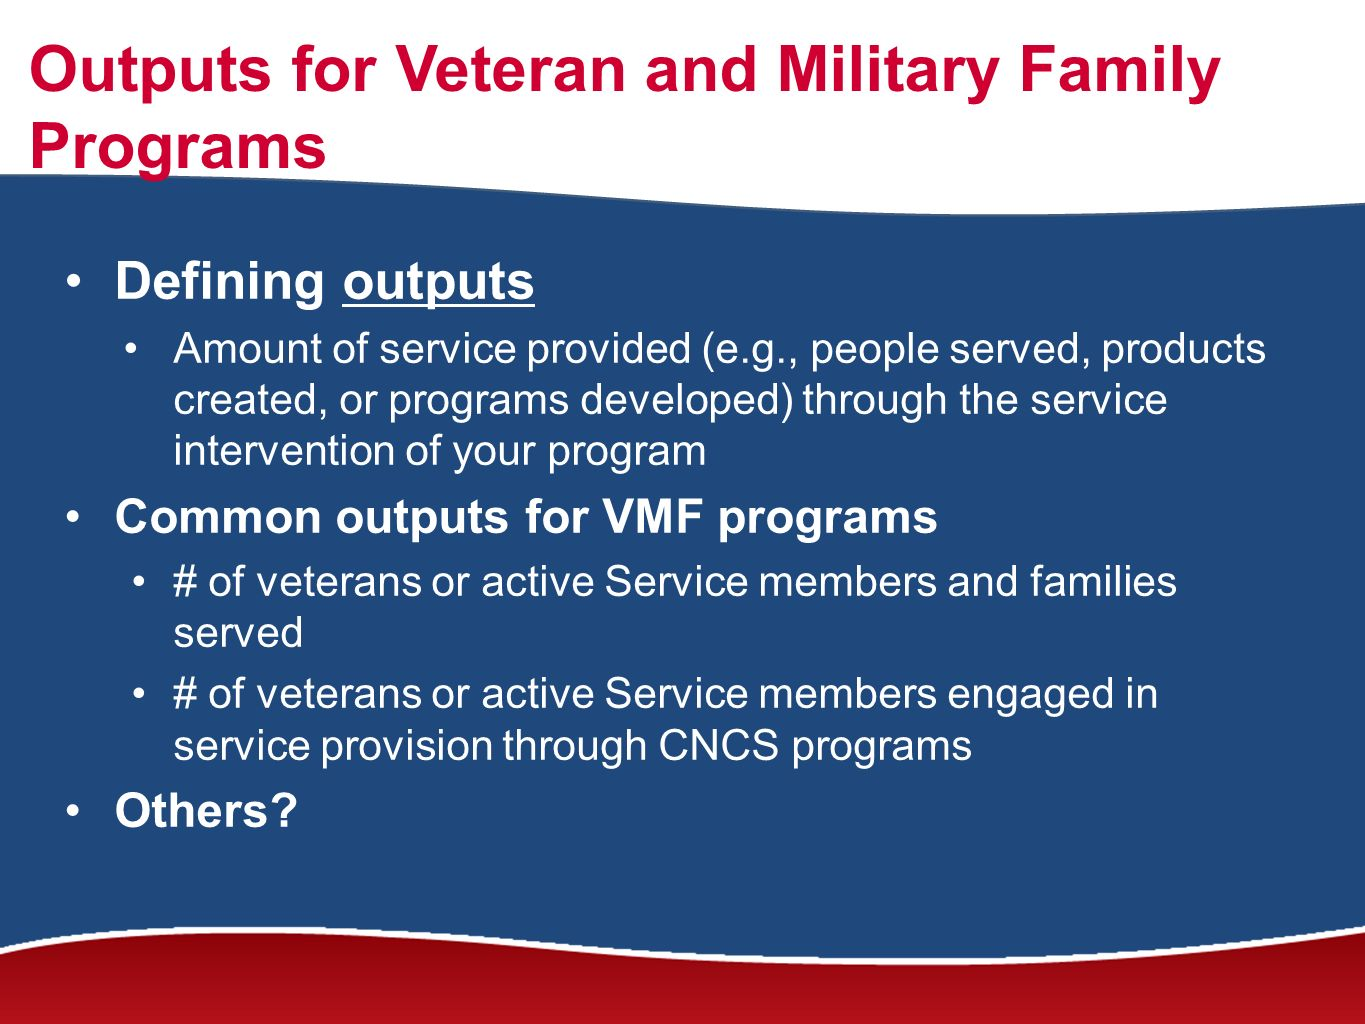 Outputs for Veteran and Military Family Programs Defining outputs Amount of service provided (e.g., people served, products created, or programs developed) through the service intervention of your program Common outputs for VMF programs # of veterans or active Service members and families served # of veterans or active Service members engaged in service provision through CNCS programs Others